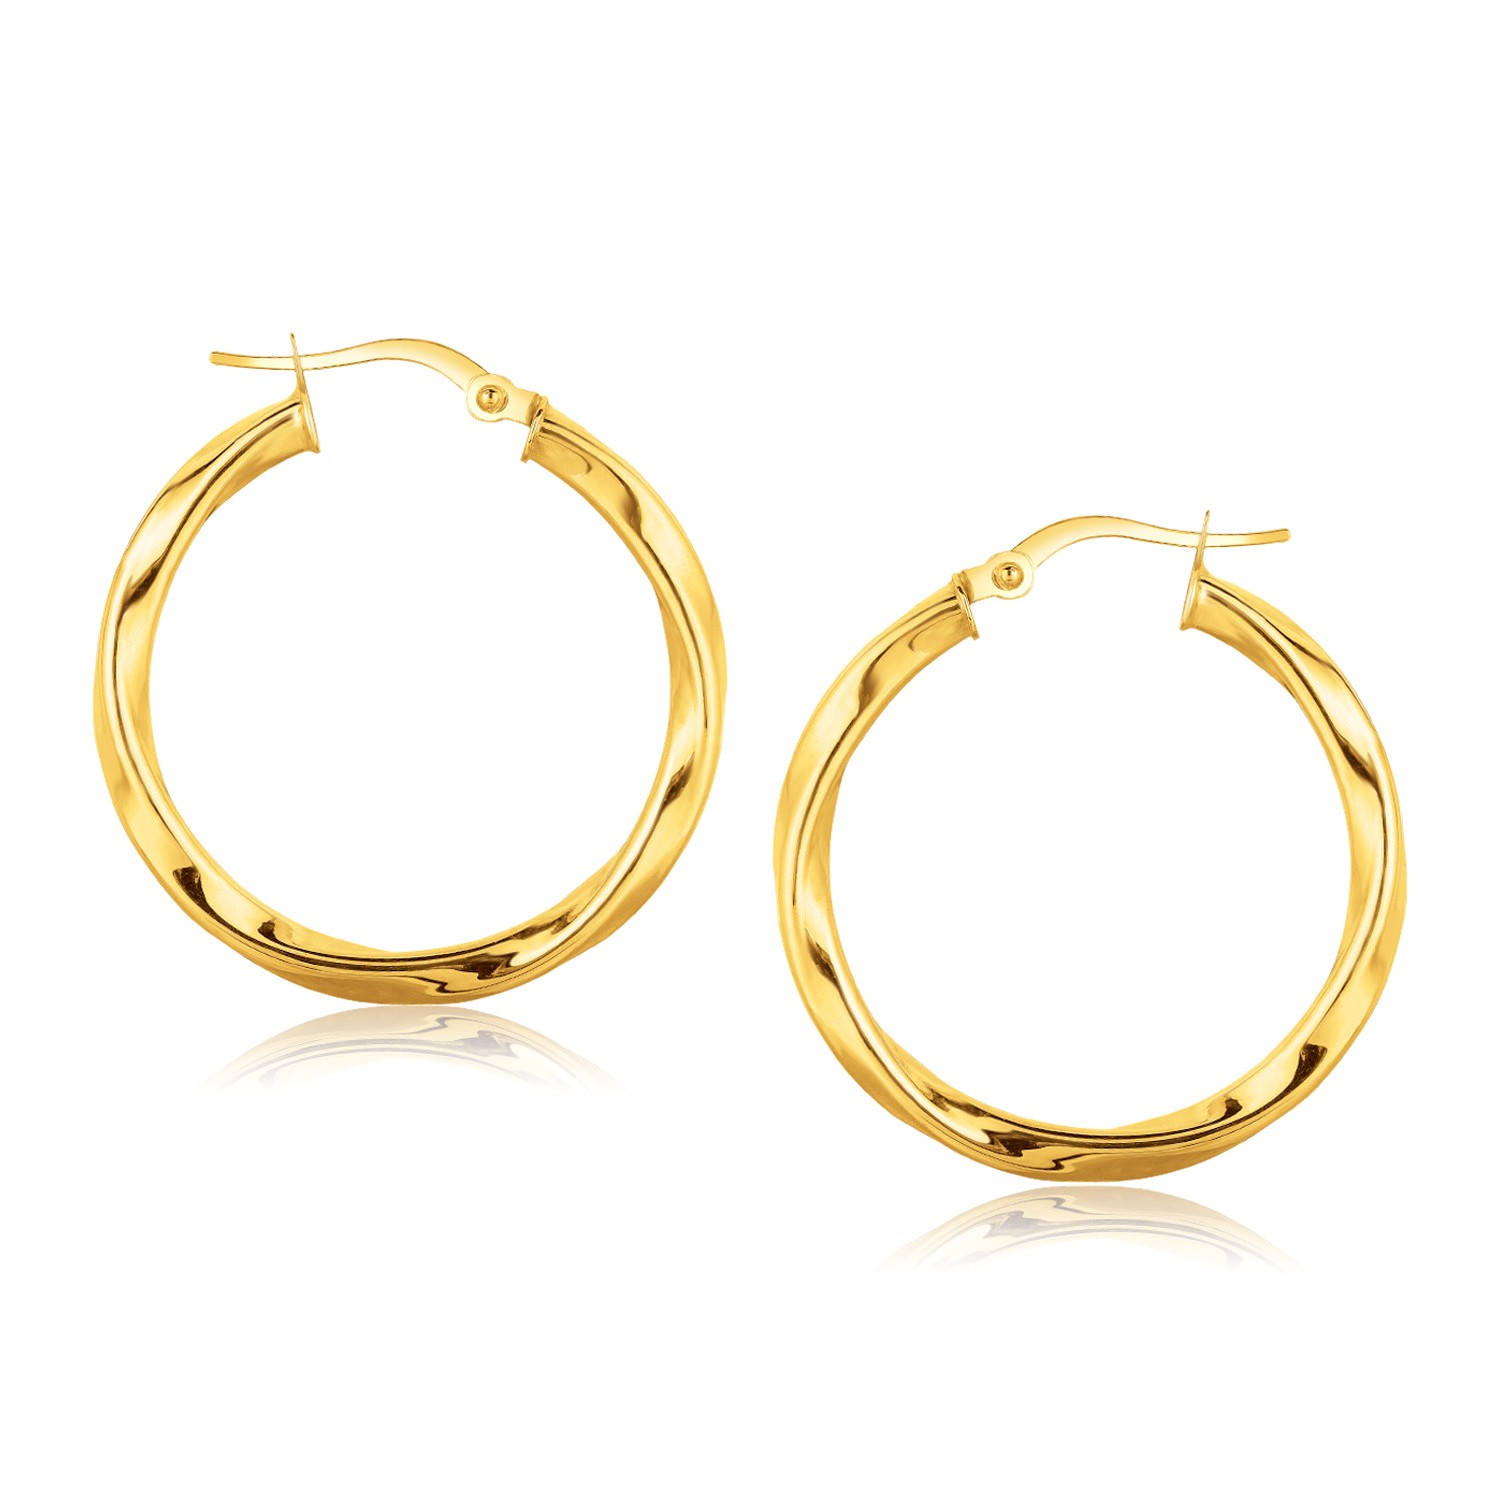 16 hoop earrings 14k yellow gold classic twist hoop earrings 1 3 16 inch 1035